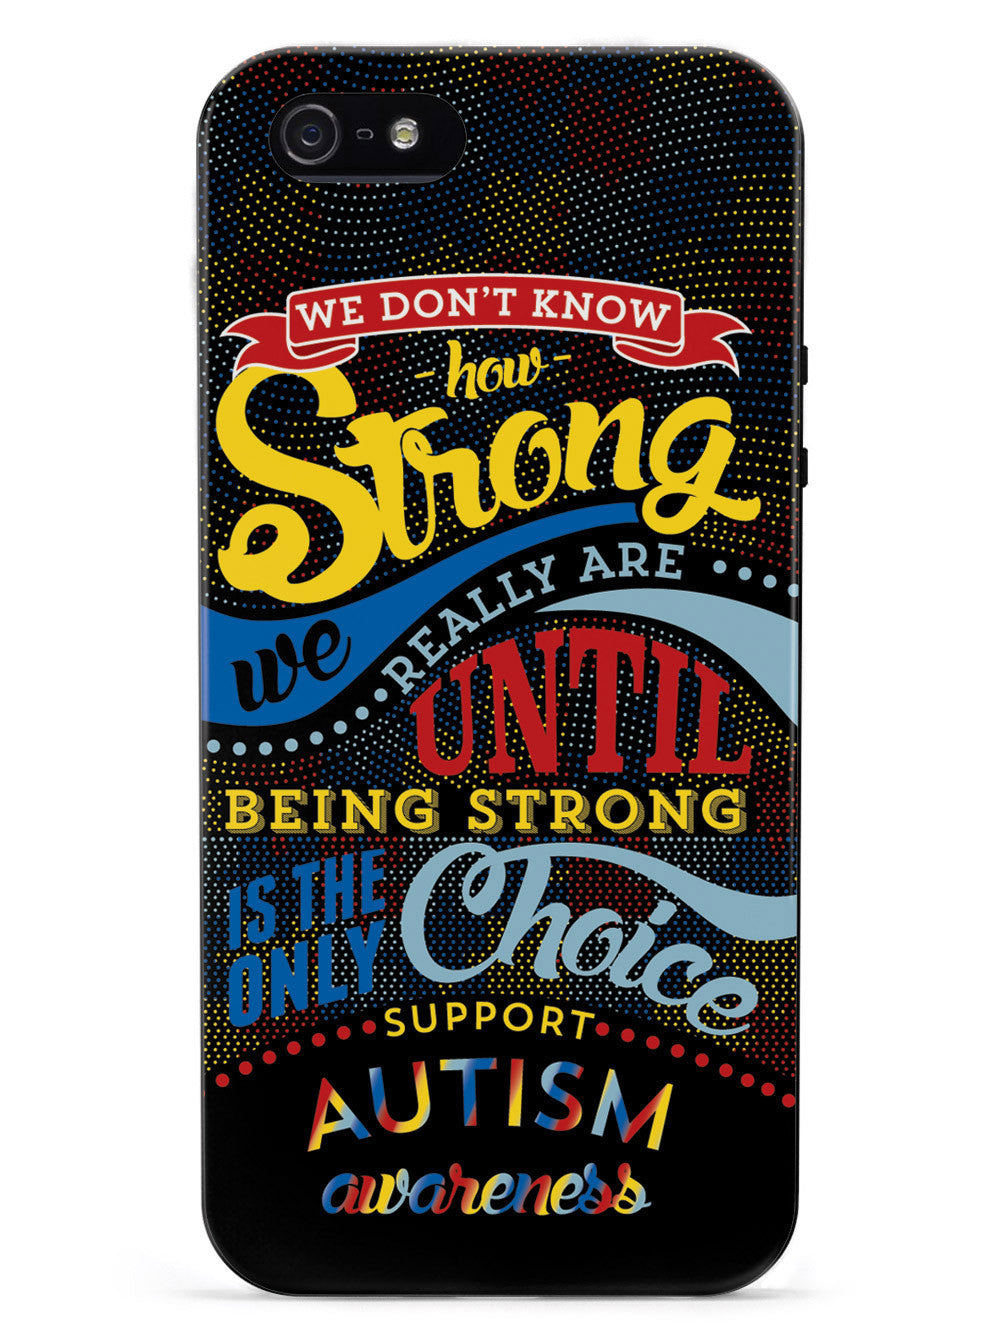 How Strong - Autism Awareness Case